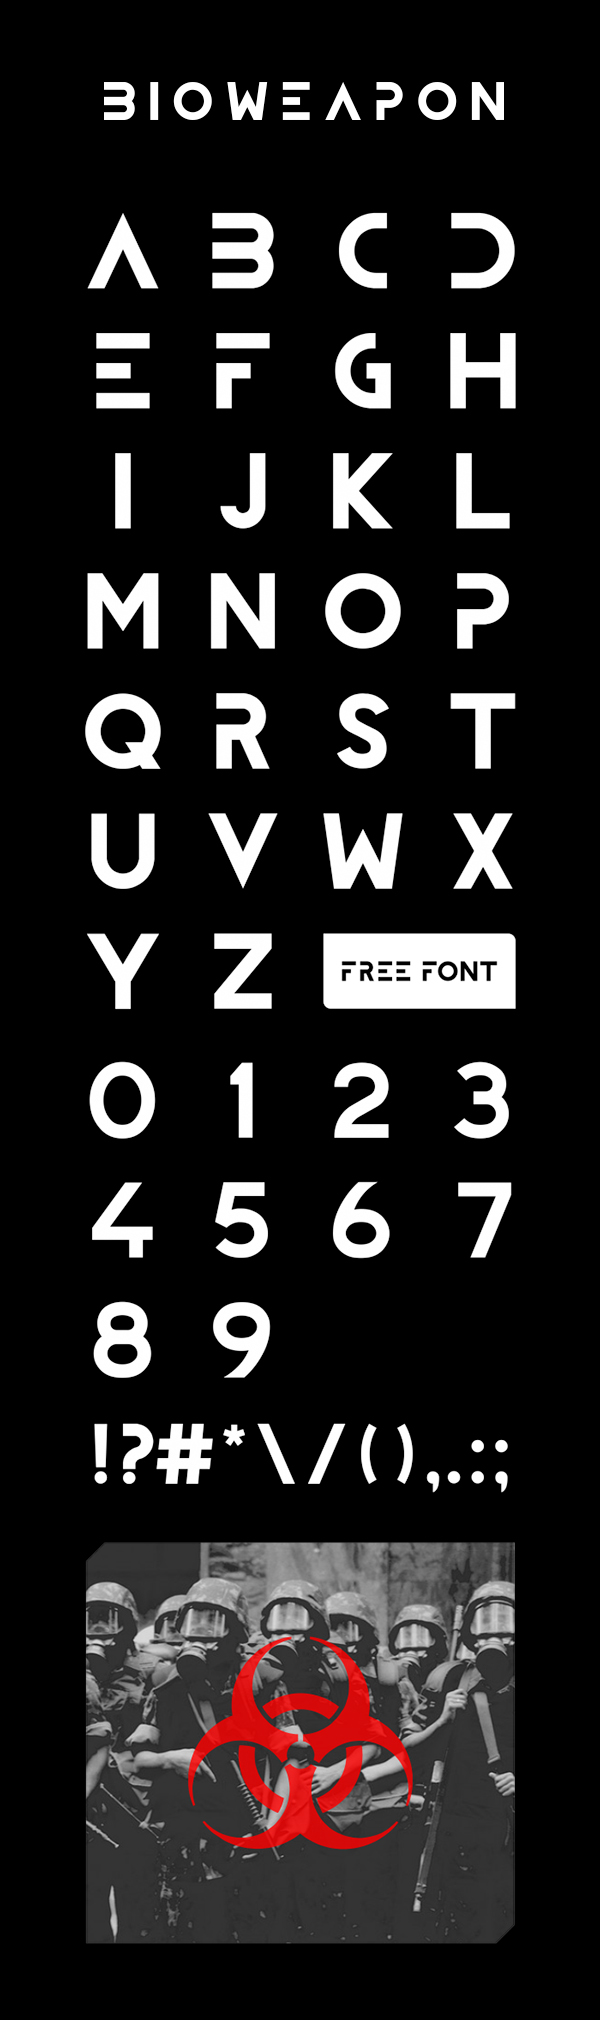 Bioweapon Free Font Letters